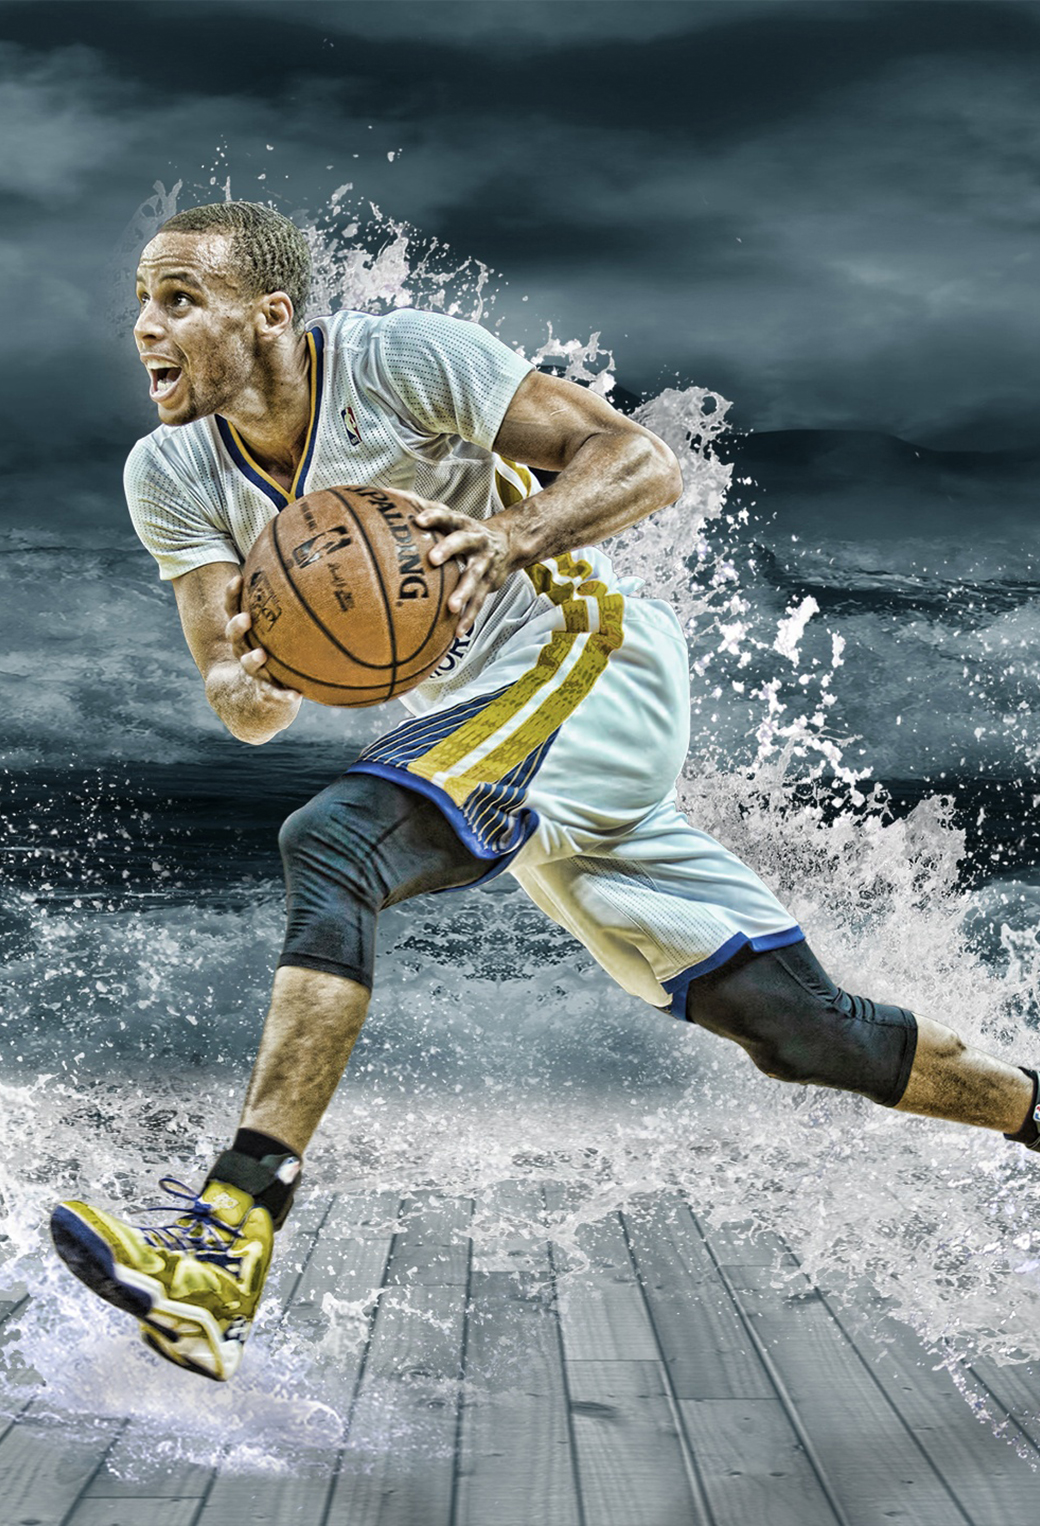 Best Wallpapers for all iPhone Retina Stephen Curry Splash 1040x1526